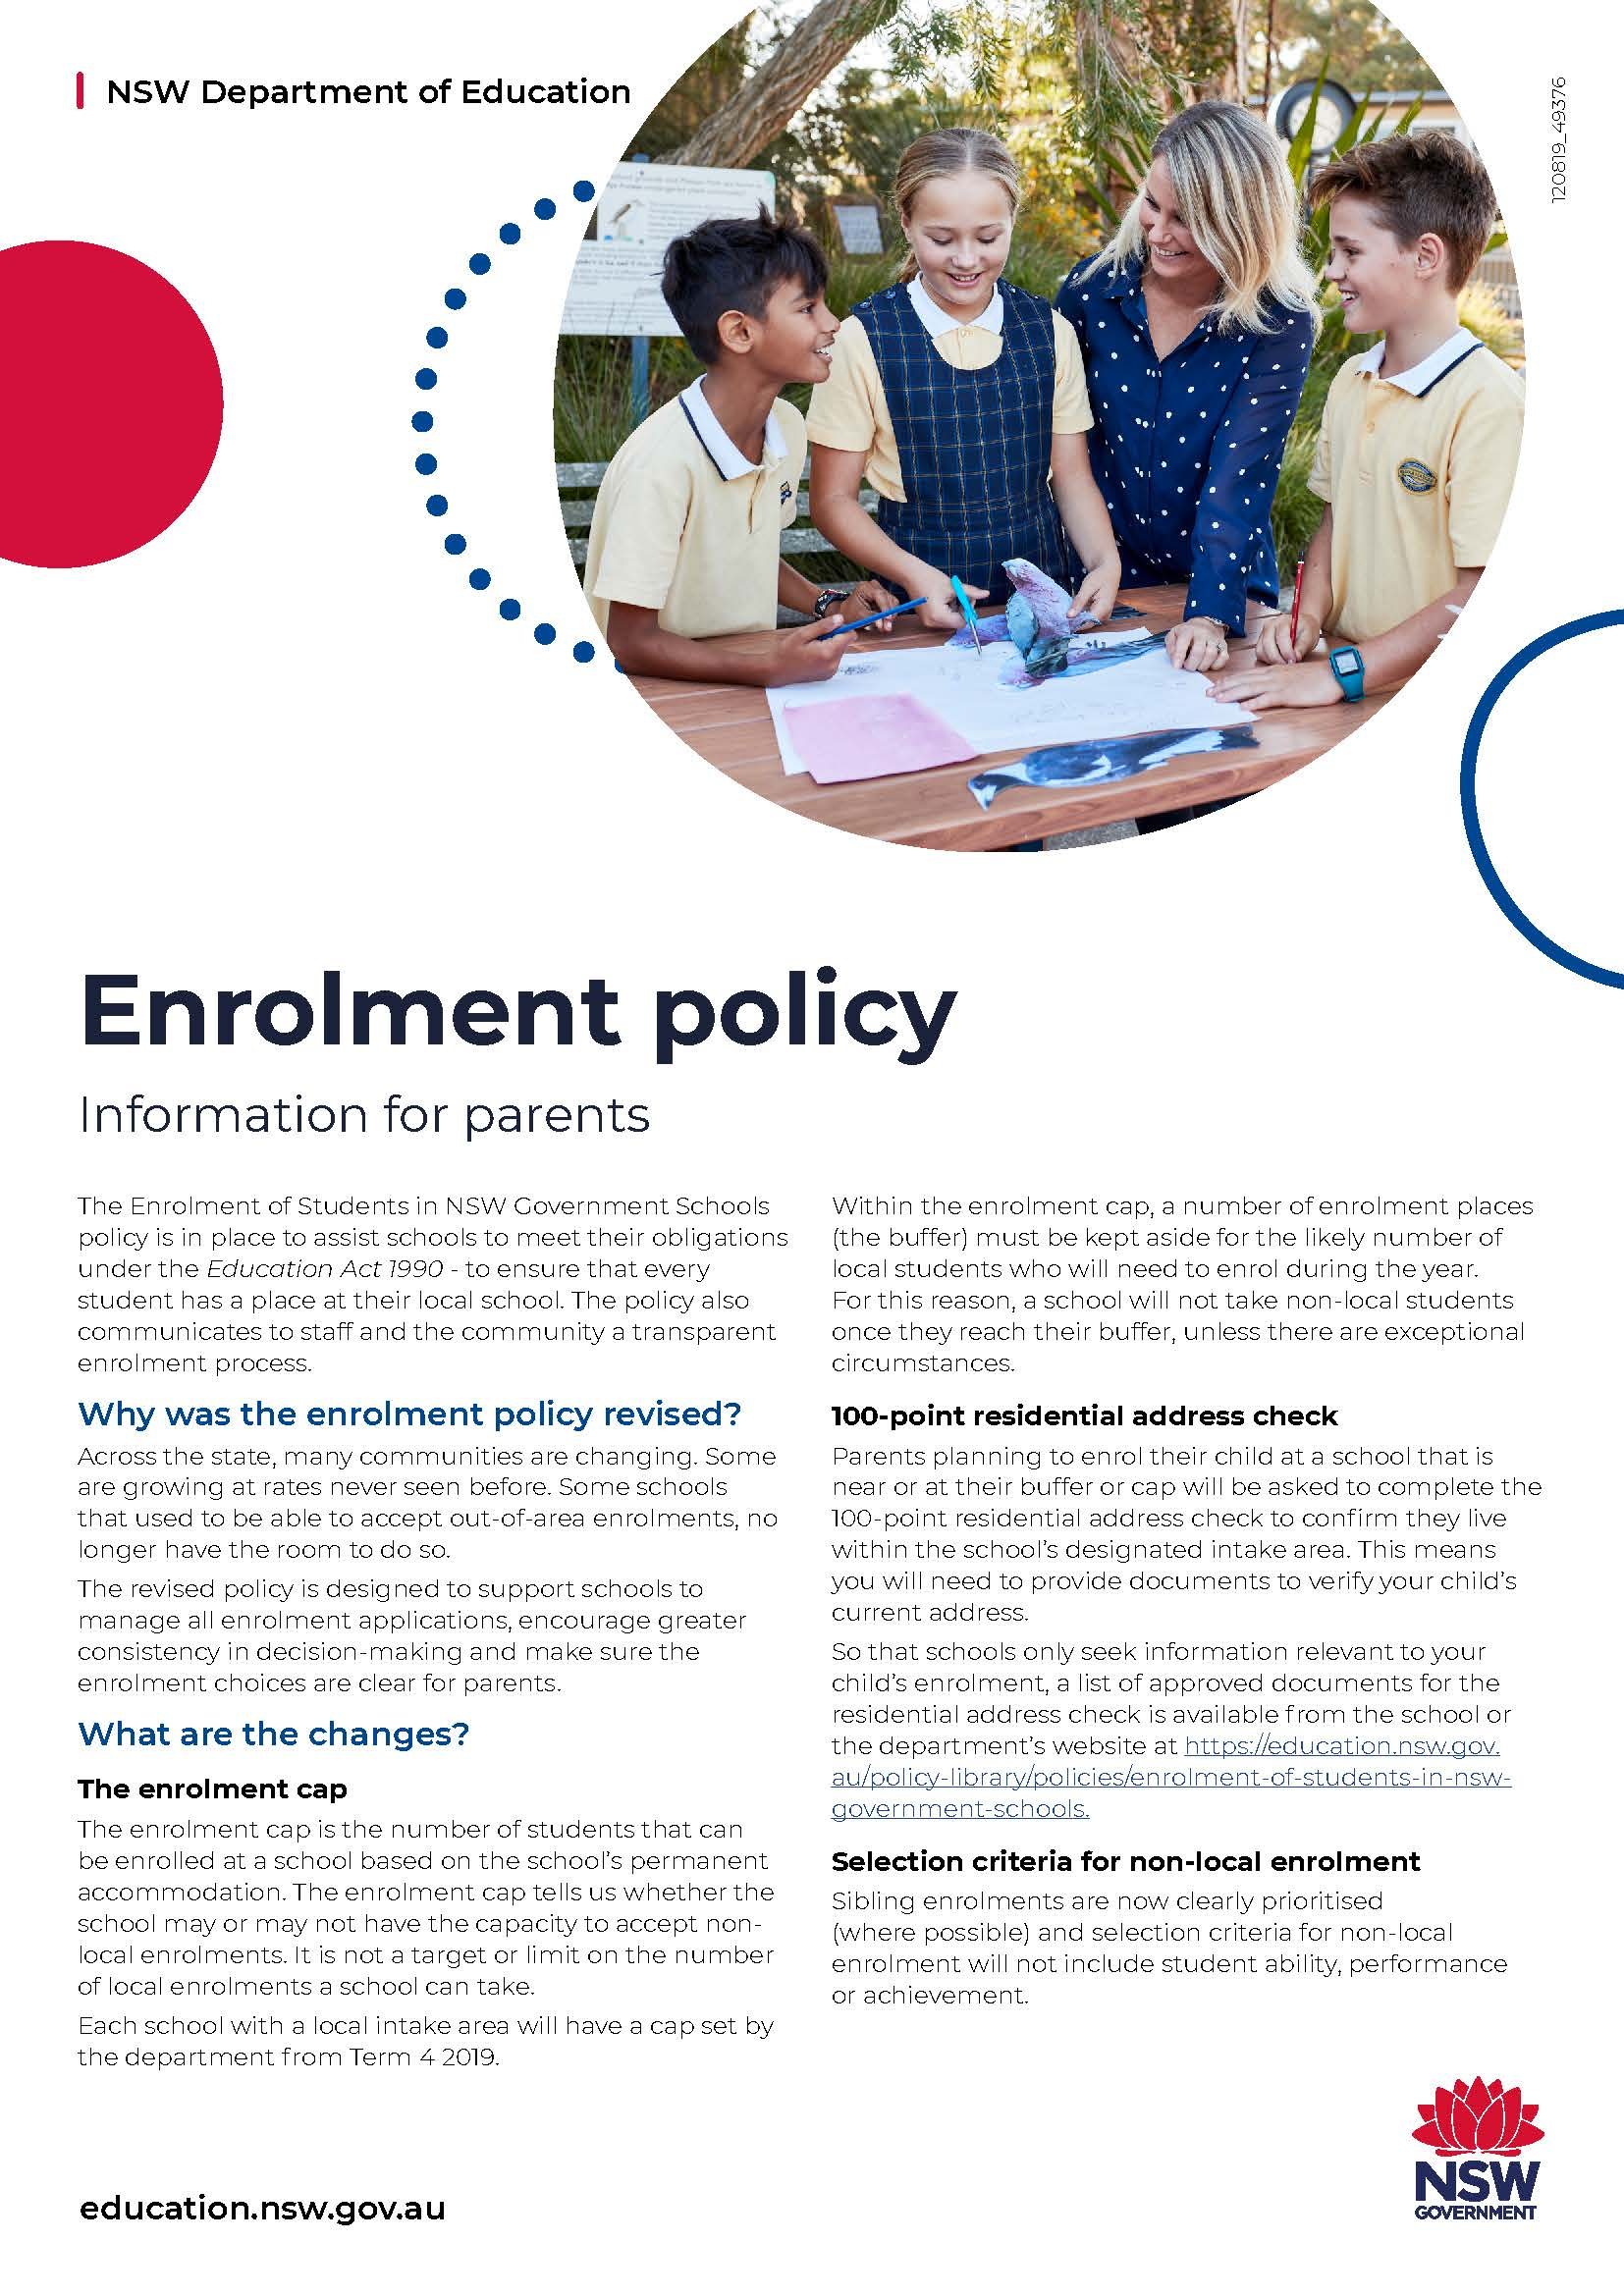 Changes to enrolment